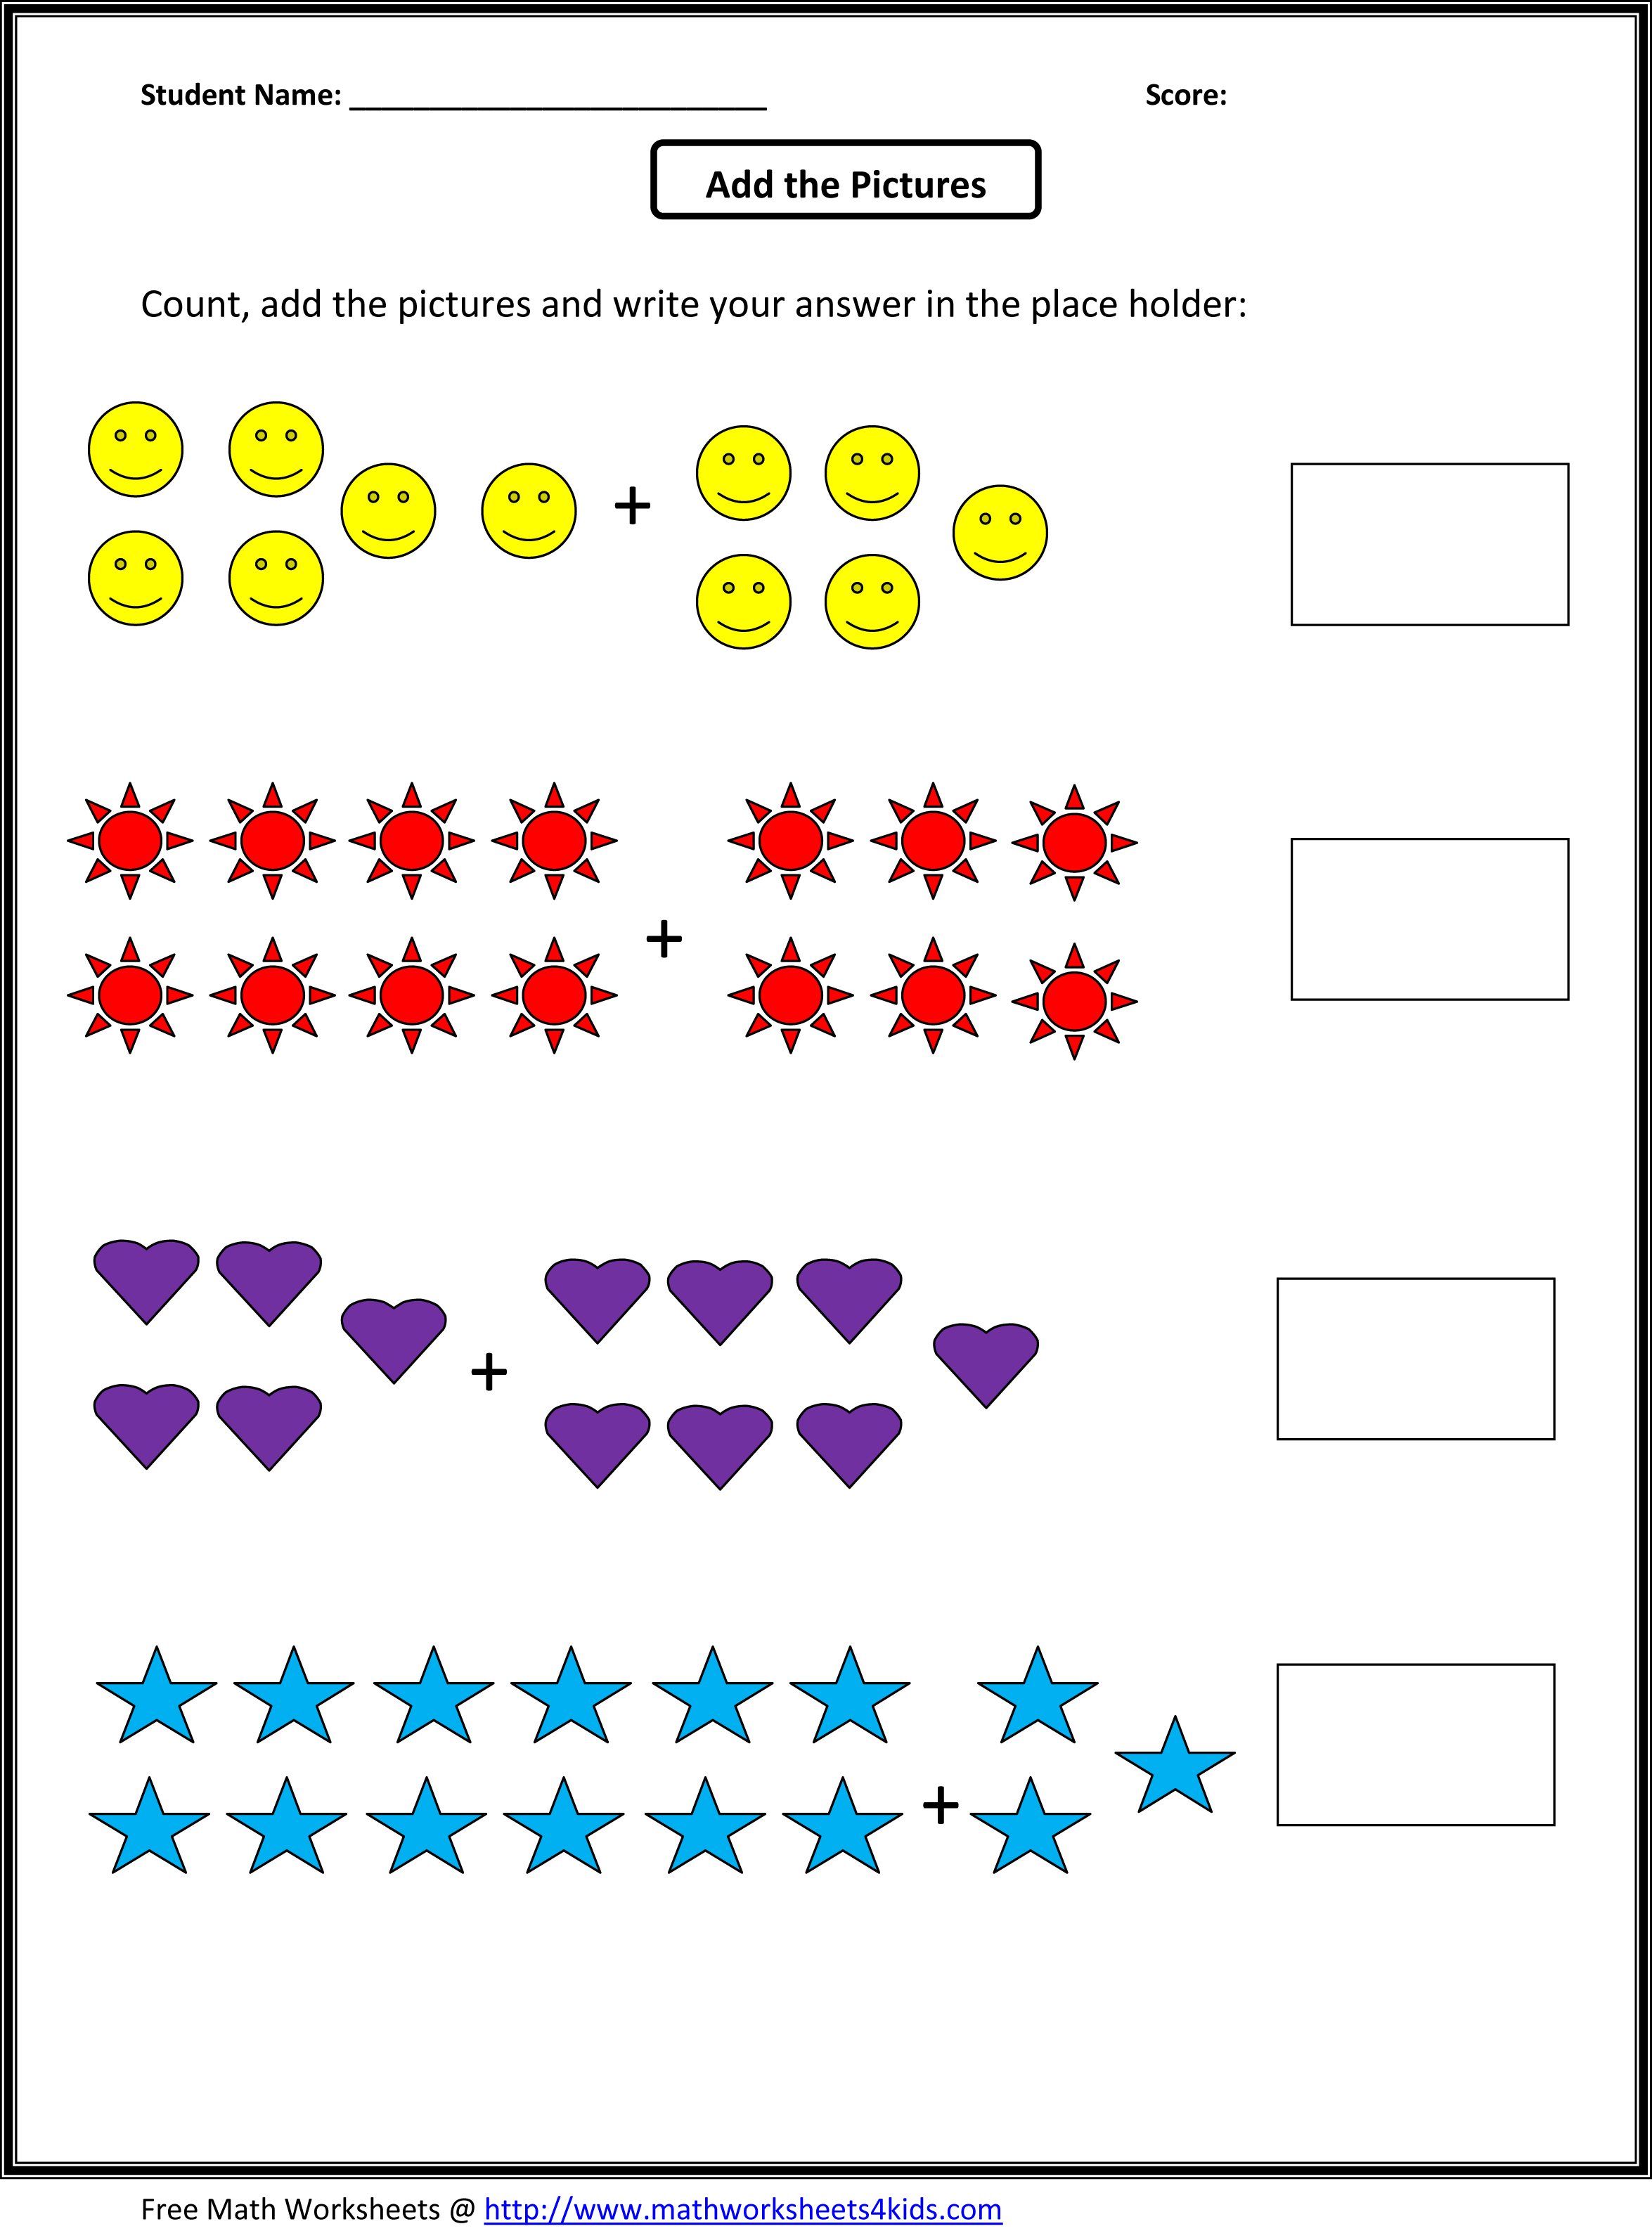 Weirdmailus  Winsome Grade  Maths Worksheet  Reocurent With Goodlooking Math Worksheets For St Grade Free  Reocurent With Attractive Words With Multiple Meanings Worksheet Rd Grade Also Sense Of Hearing Worksheet In Addition Retirement Planning Worksheets And Color Cut And Paste Worksheets For Kindergarten As Well As Worksheets About Plants Additionally Telling Time Third Grade Worksheets From Reocurentcom With Weirdmailus  Goodlooking Grade  Maths Worksheet  Reocurent With Attractive Math Worksheets For St Grade Free  Reocurent And Winsome Words With Multiple Meanings Worksheet Rd Grade Also Sense Of Hearing Worksheet In Addition Retirement Planning Worksheets From Reocurentcom